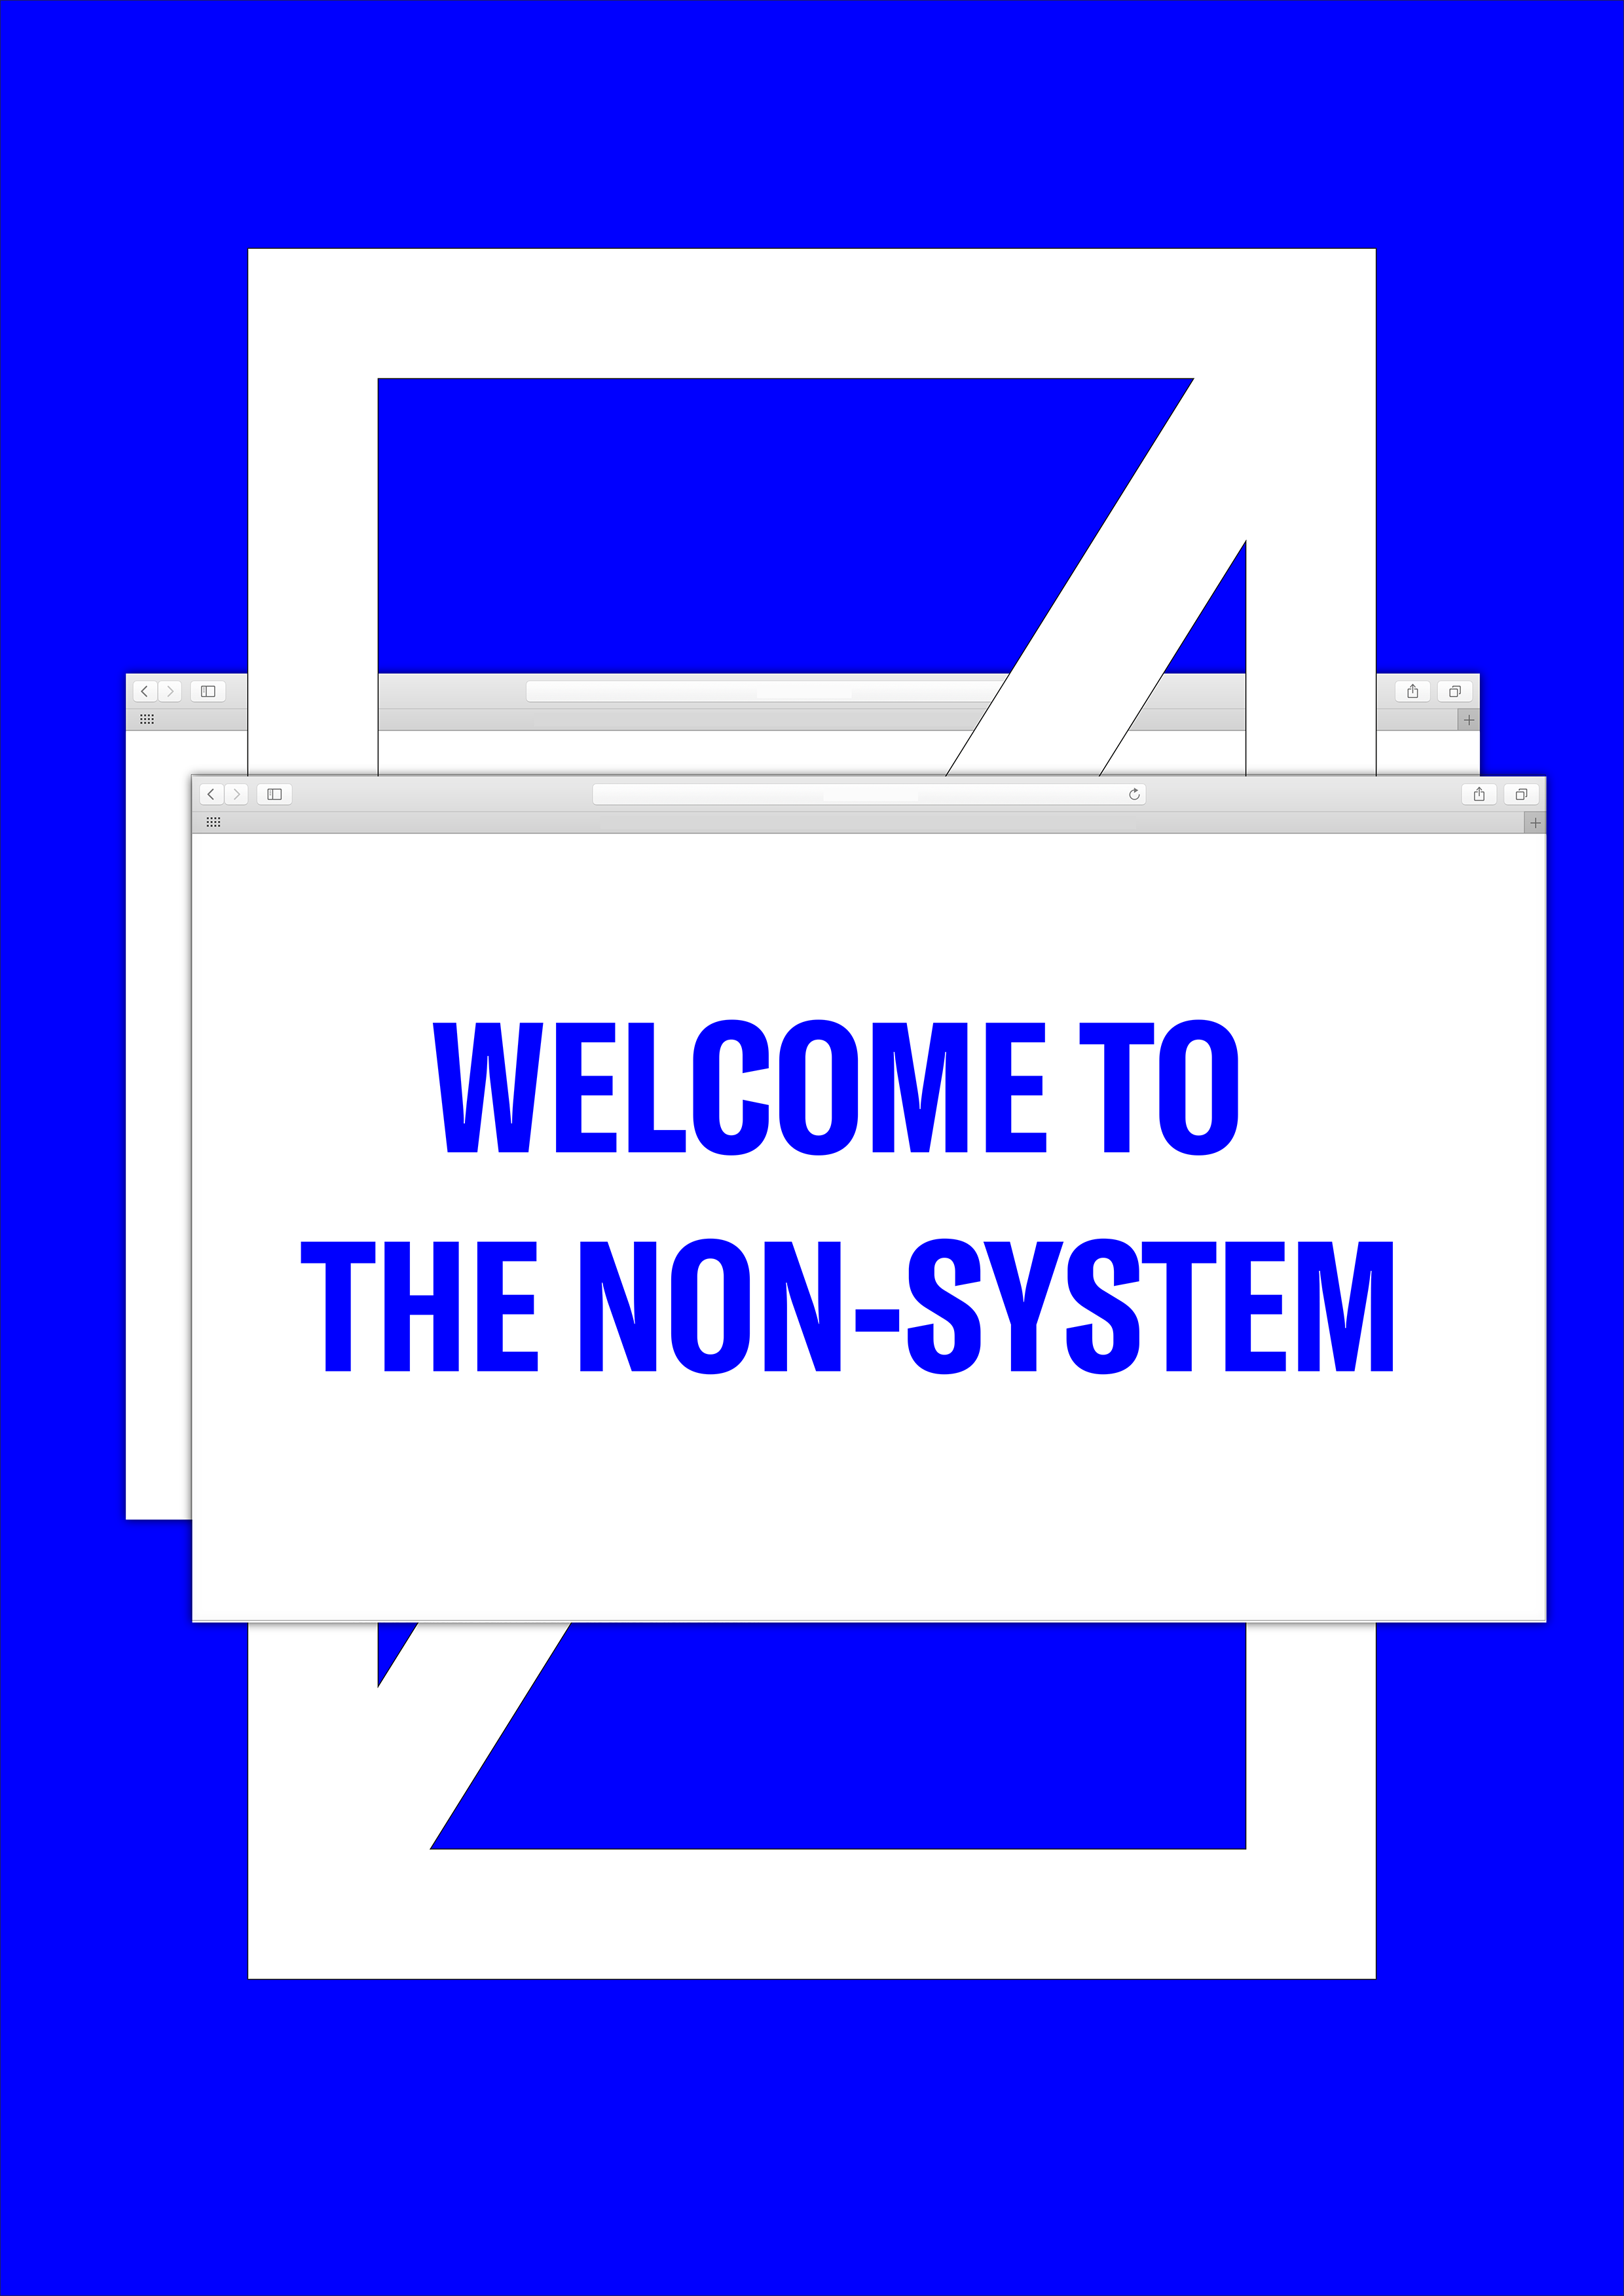 non-system